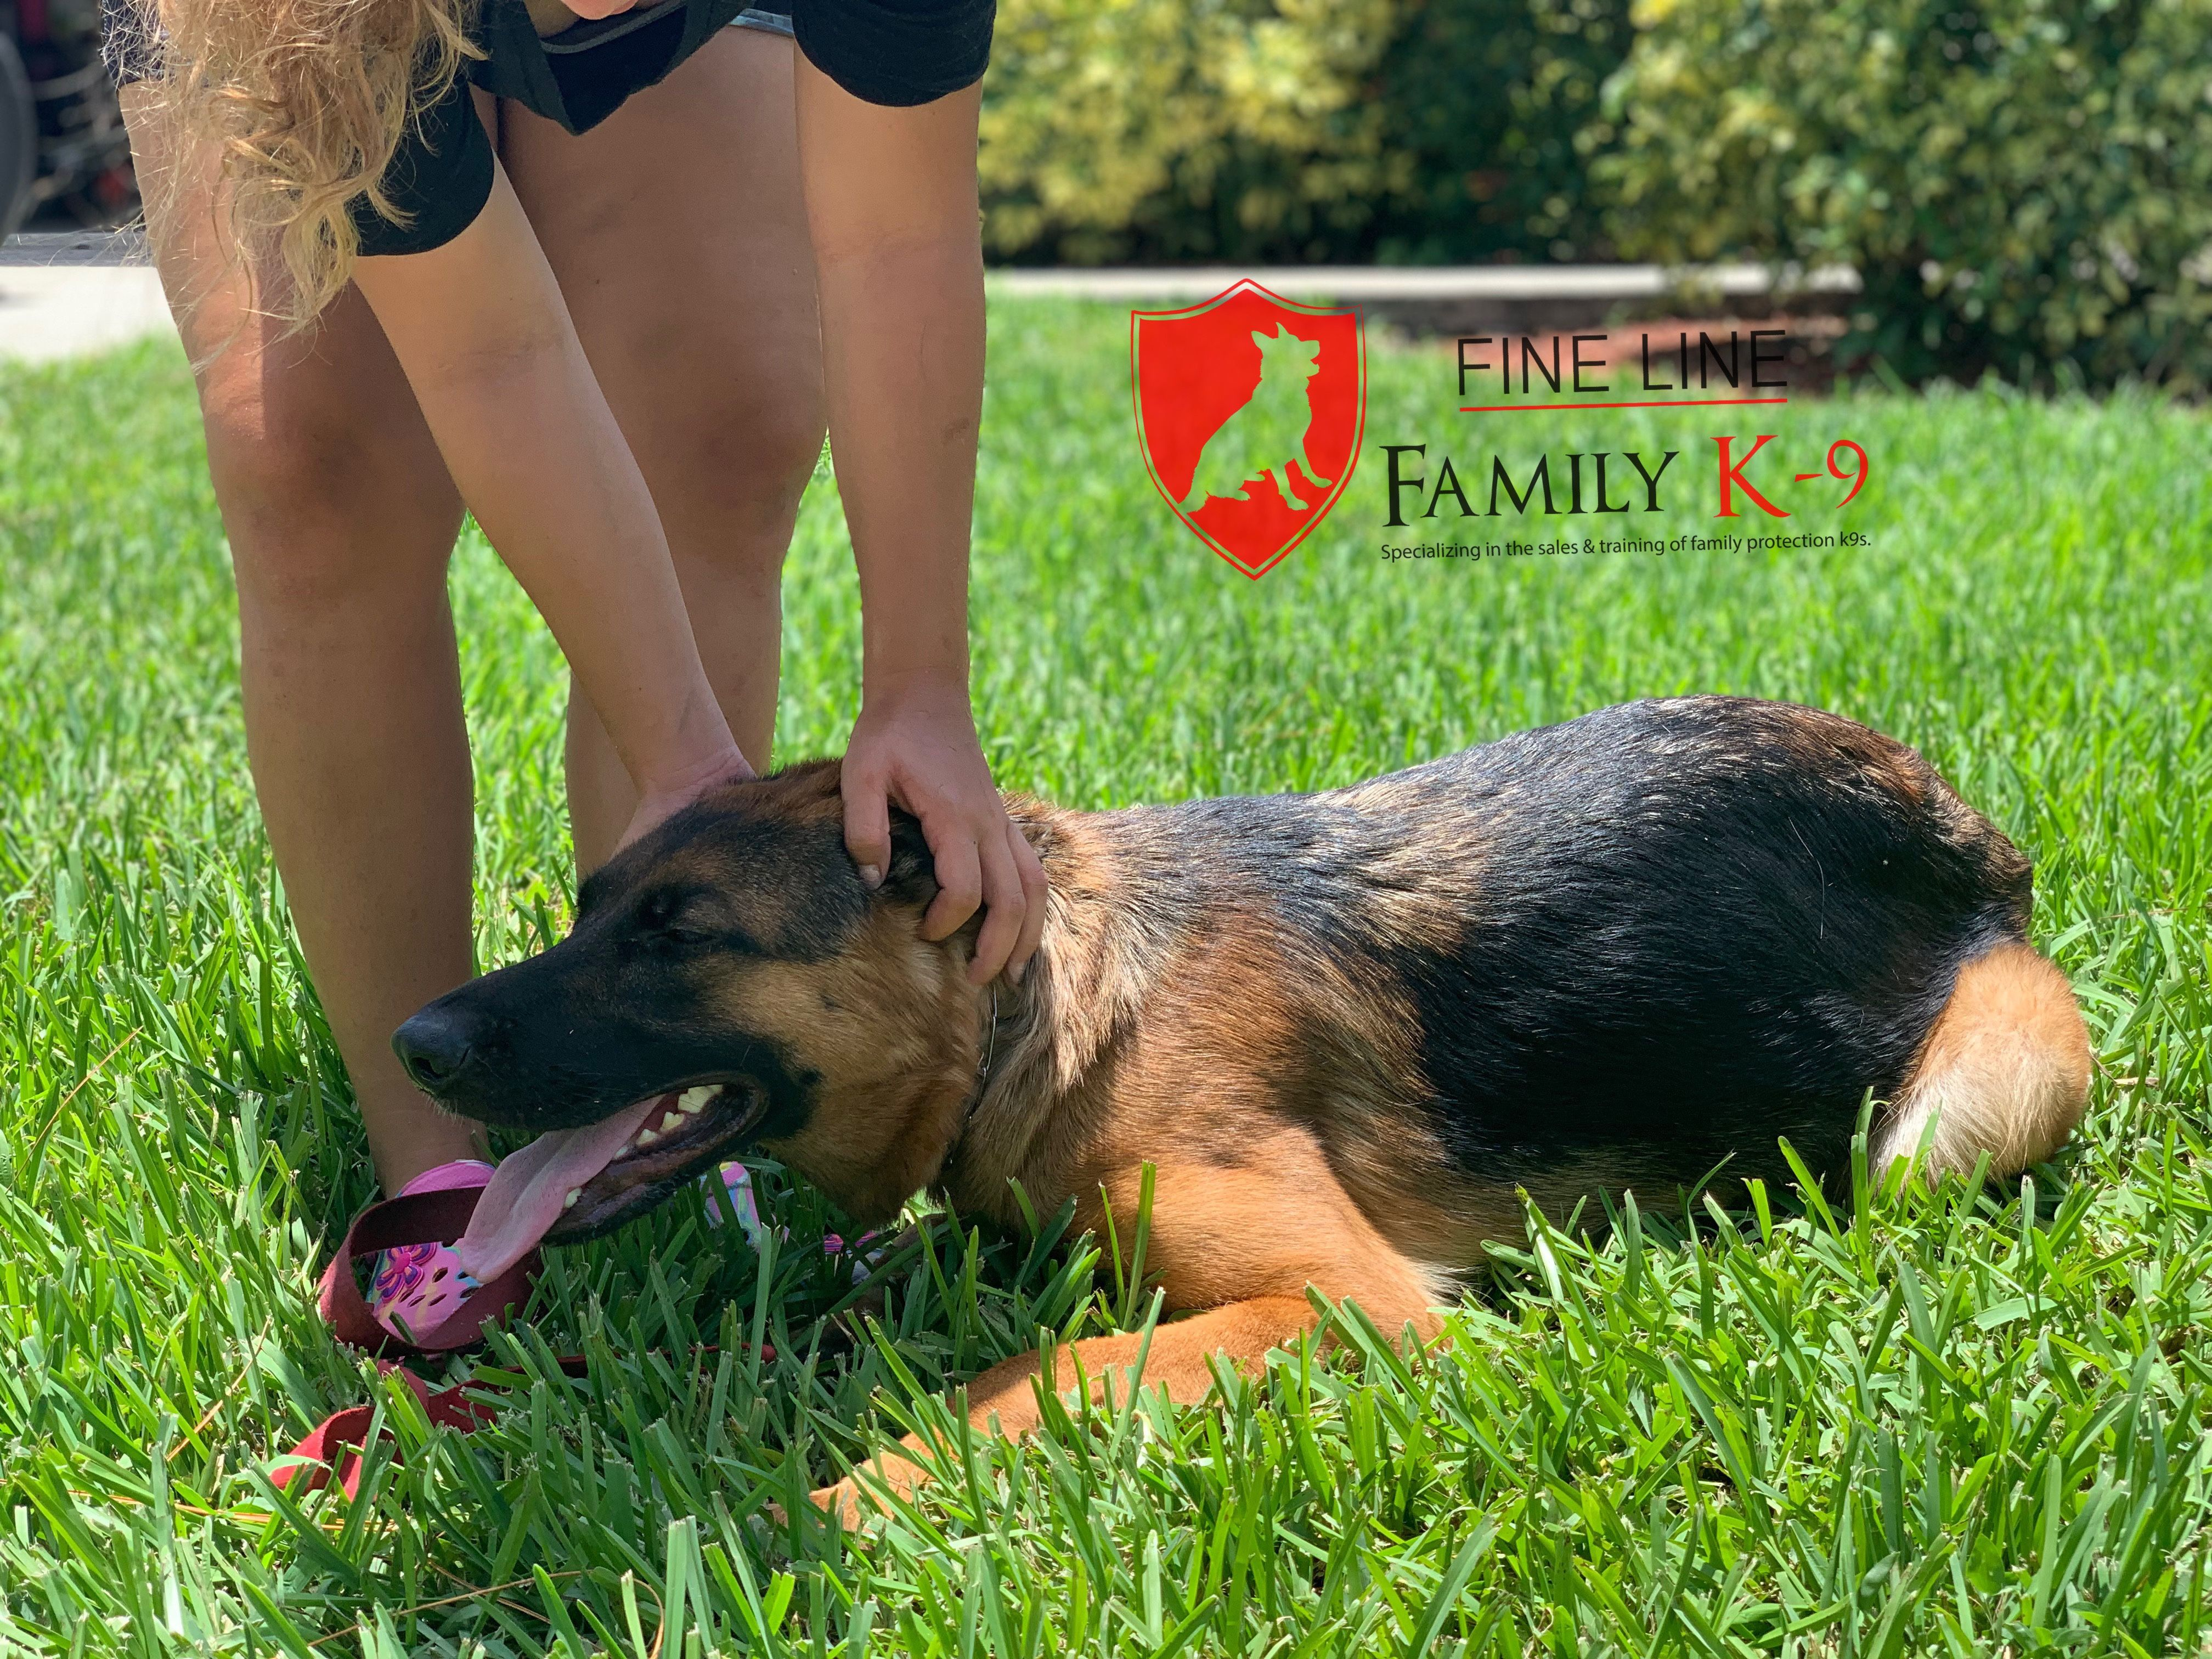 Kira Getting Tons Of Pets For Going In Her Down Boardandtrain Dogtrainer Dogtraining Obedience Workingdog Dog Dogs Working Dogs Dog Training Dog Lovers